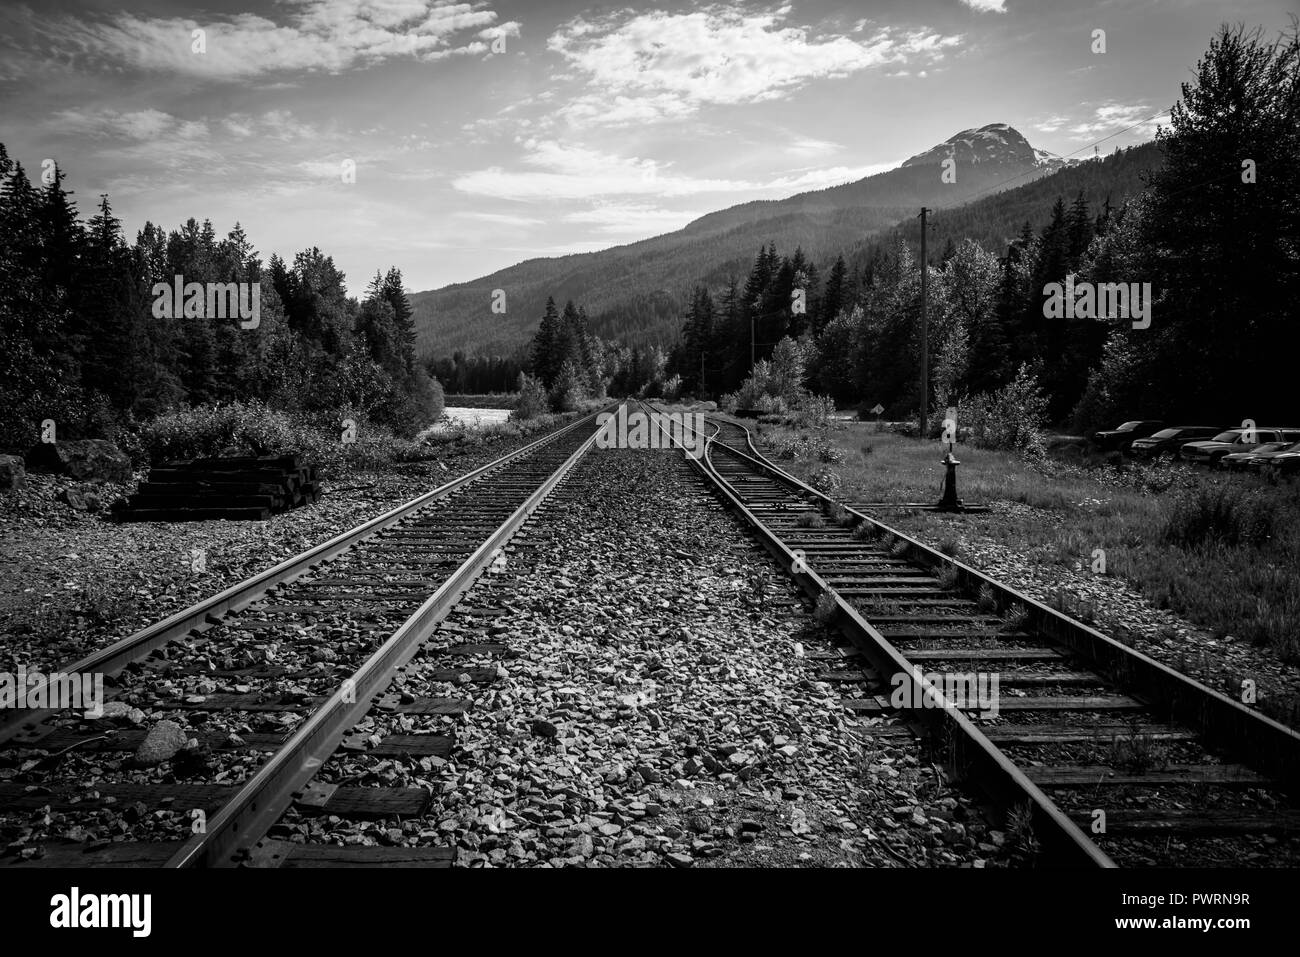 tracks - Stock Image